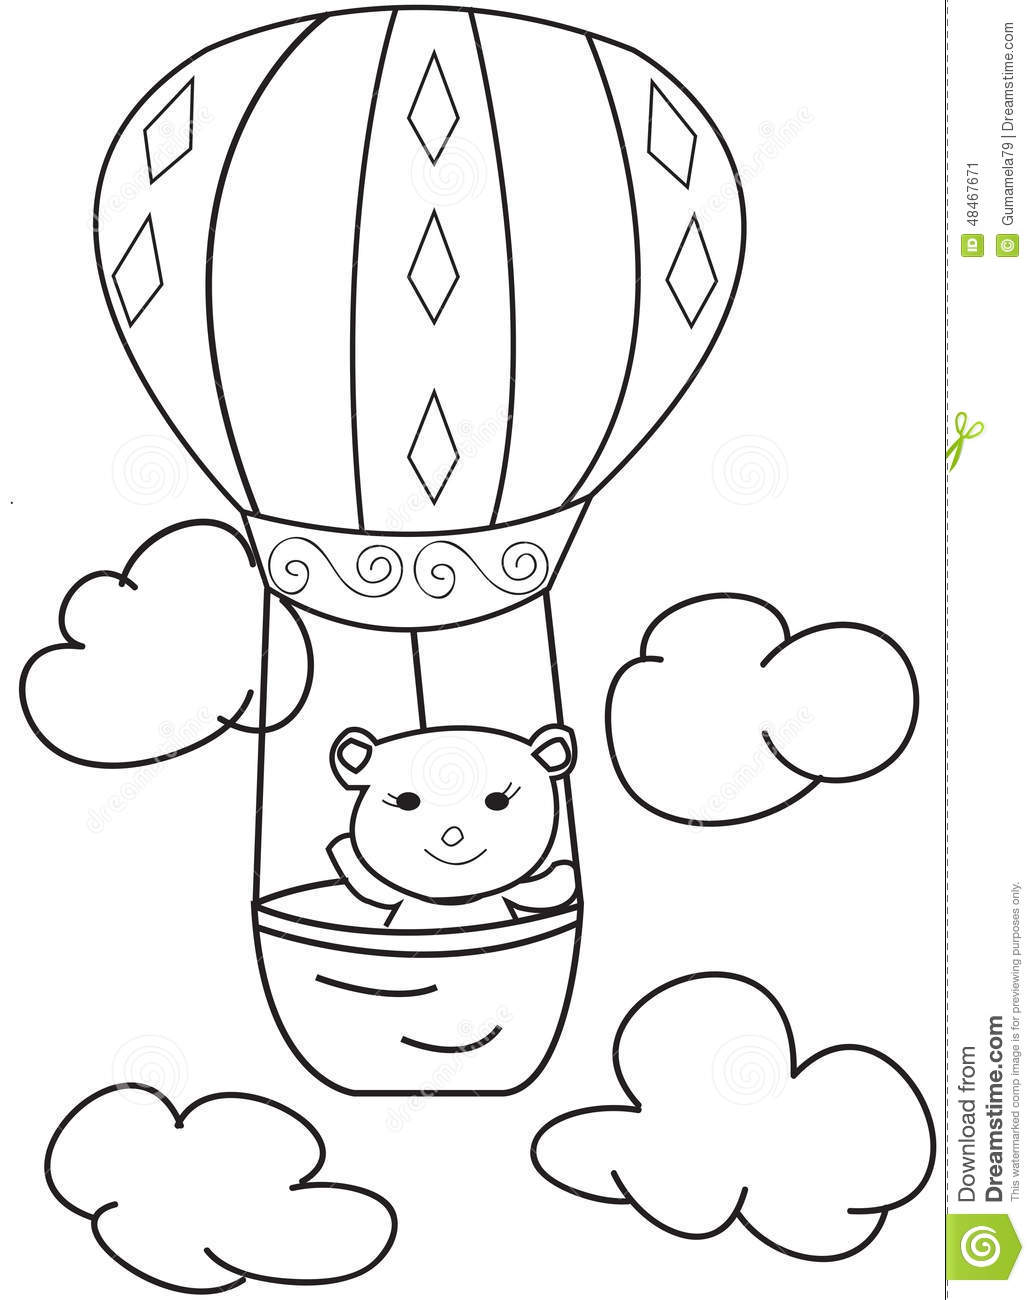 Hand Drawn Sketch Of A Bear In A Hot Air Balloon Stock